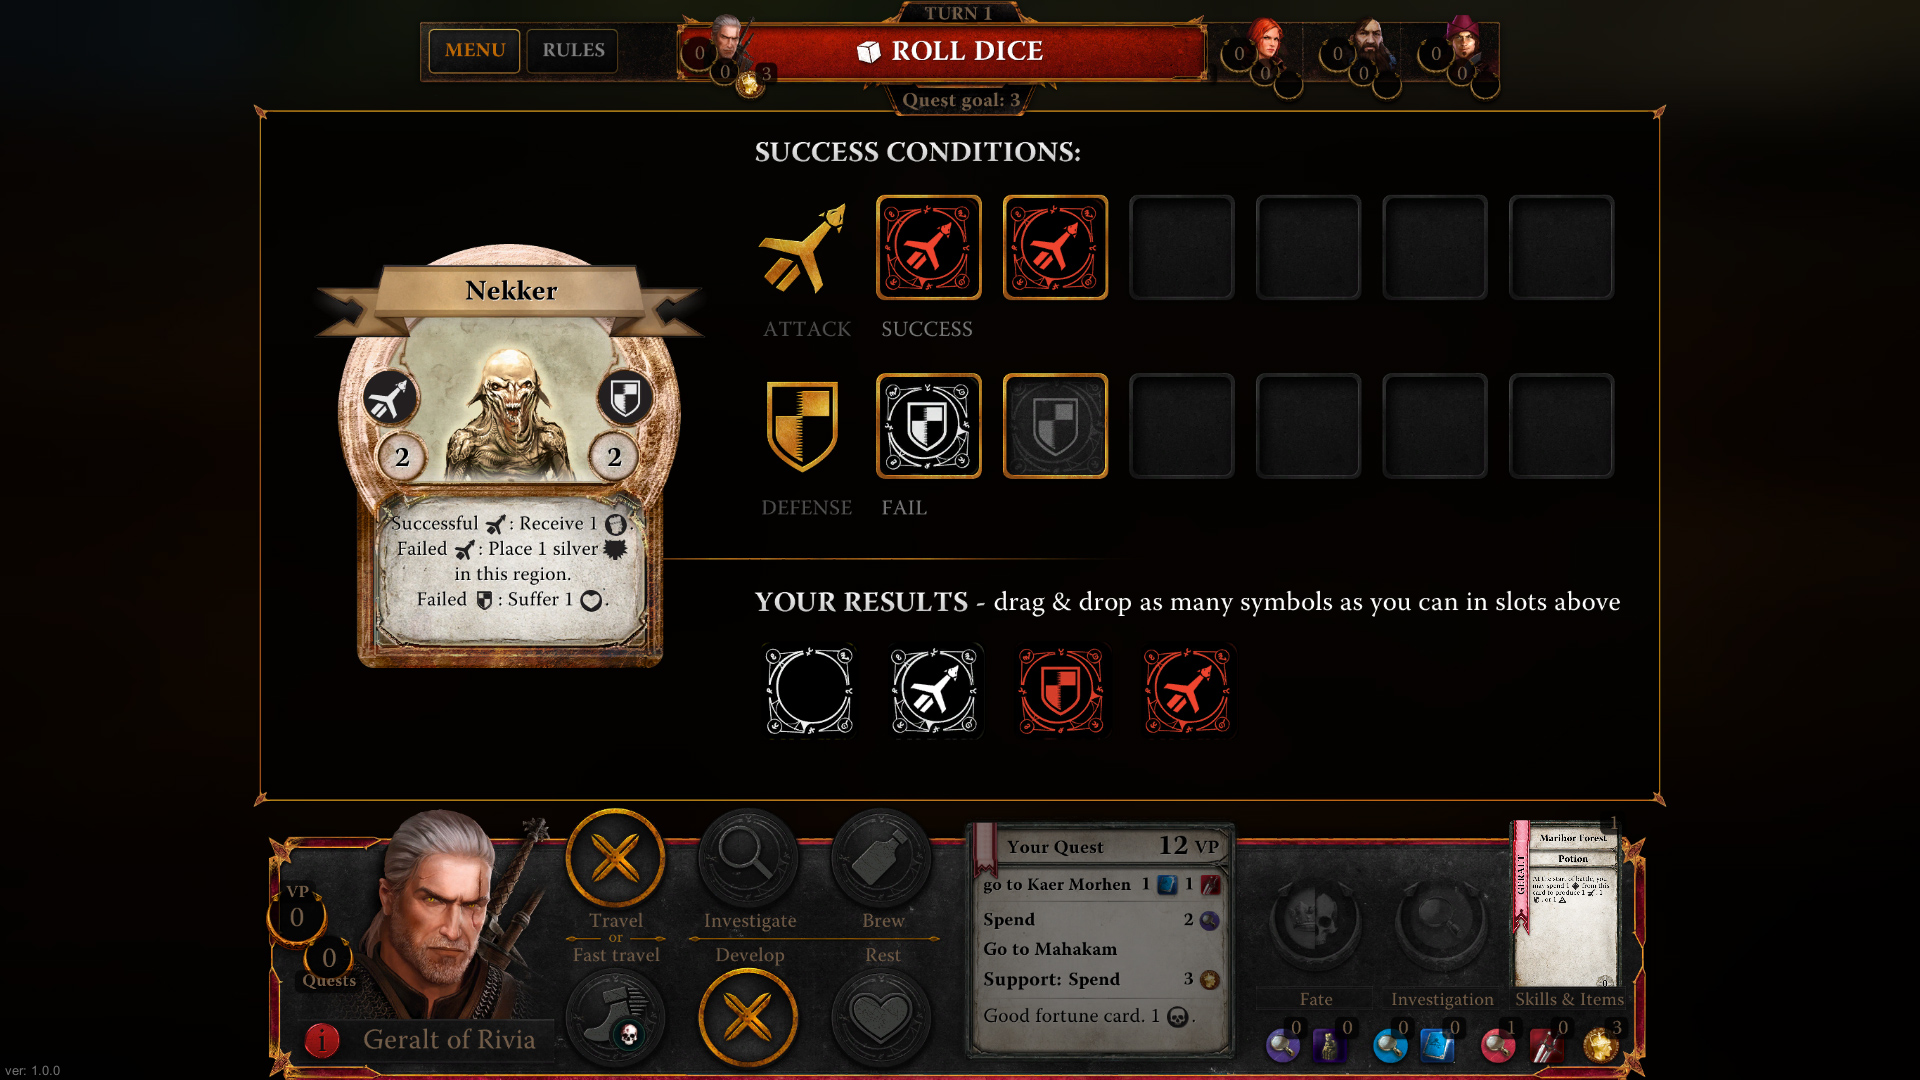 The Witcher Adventure Game screenshot 2